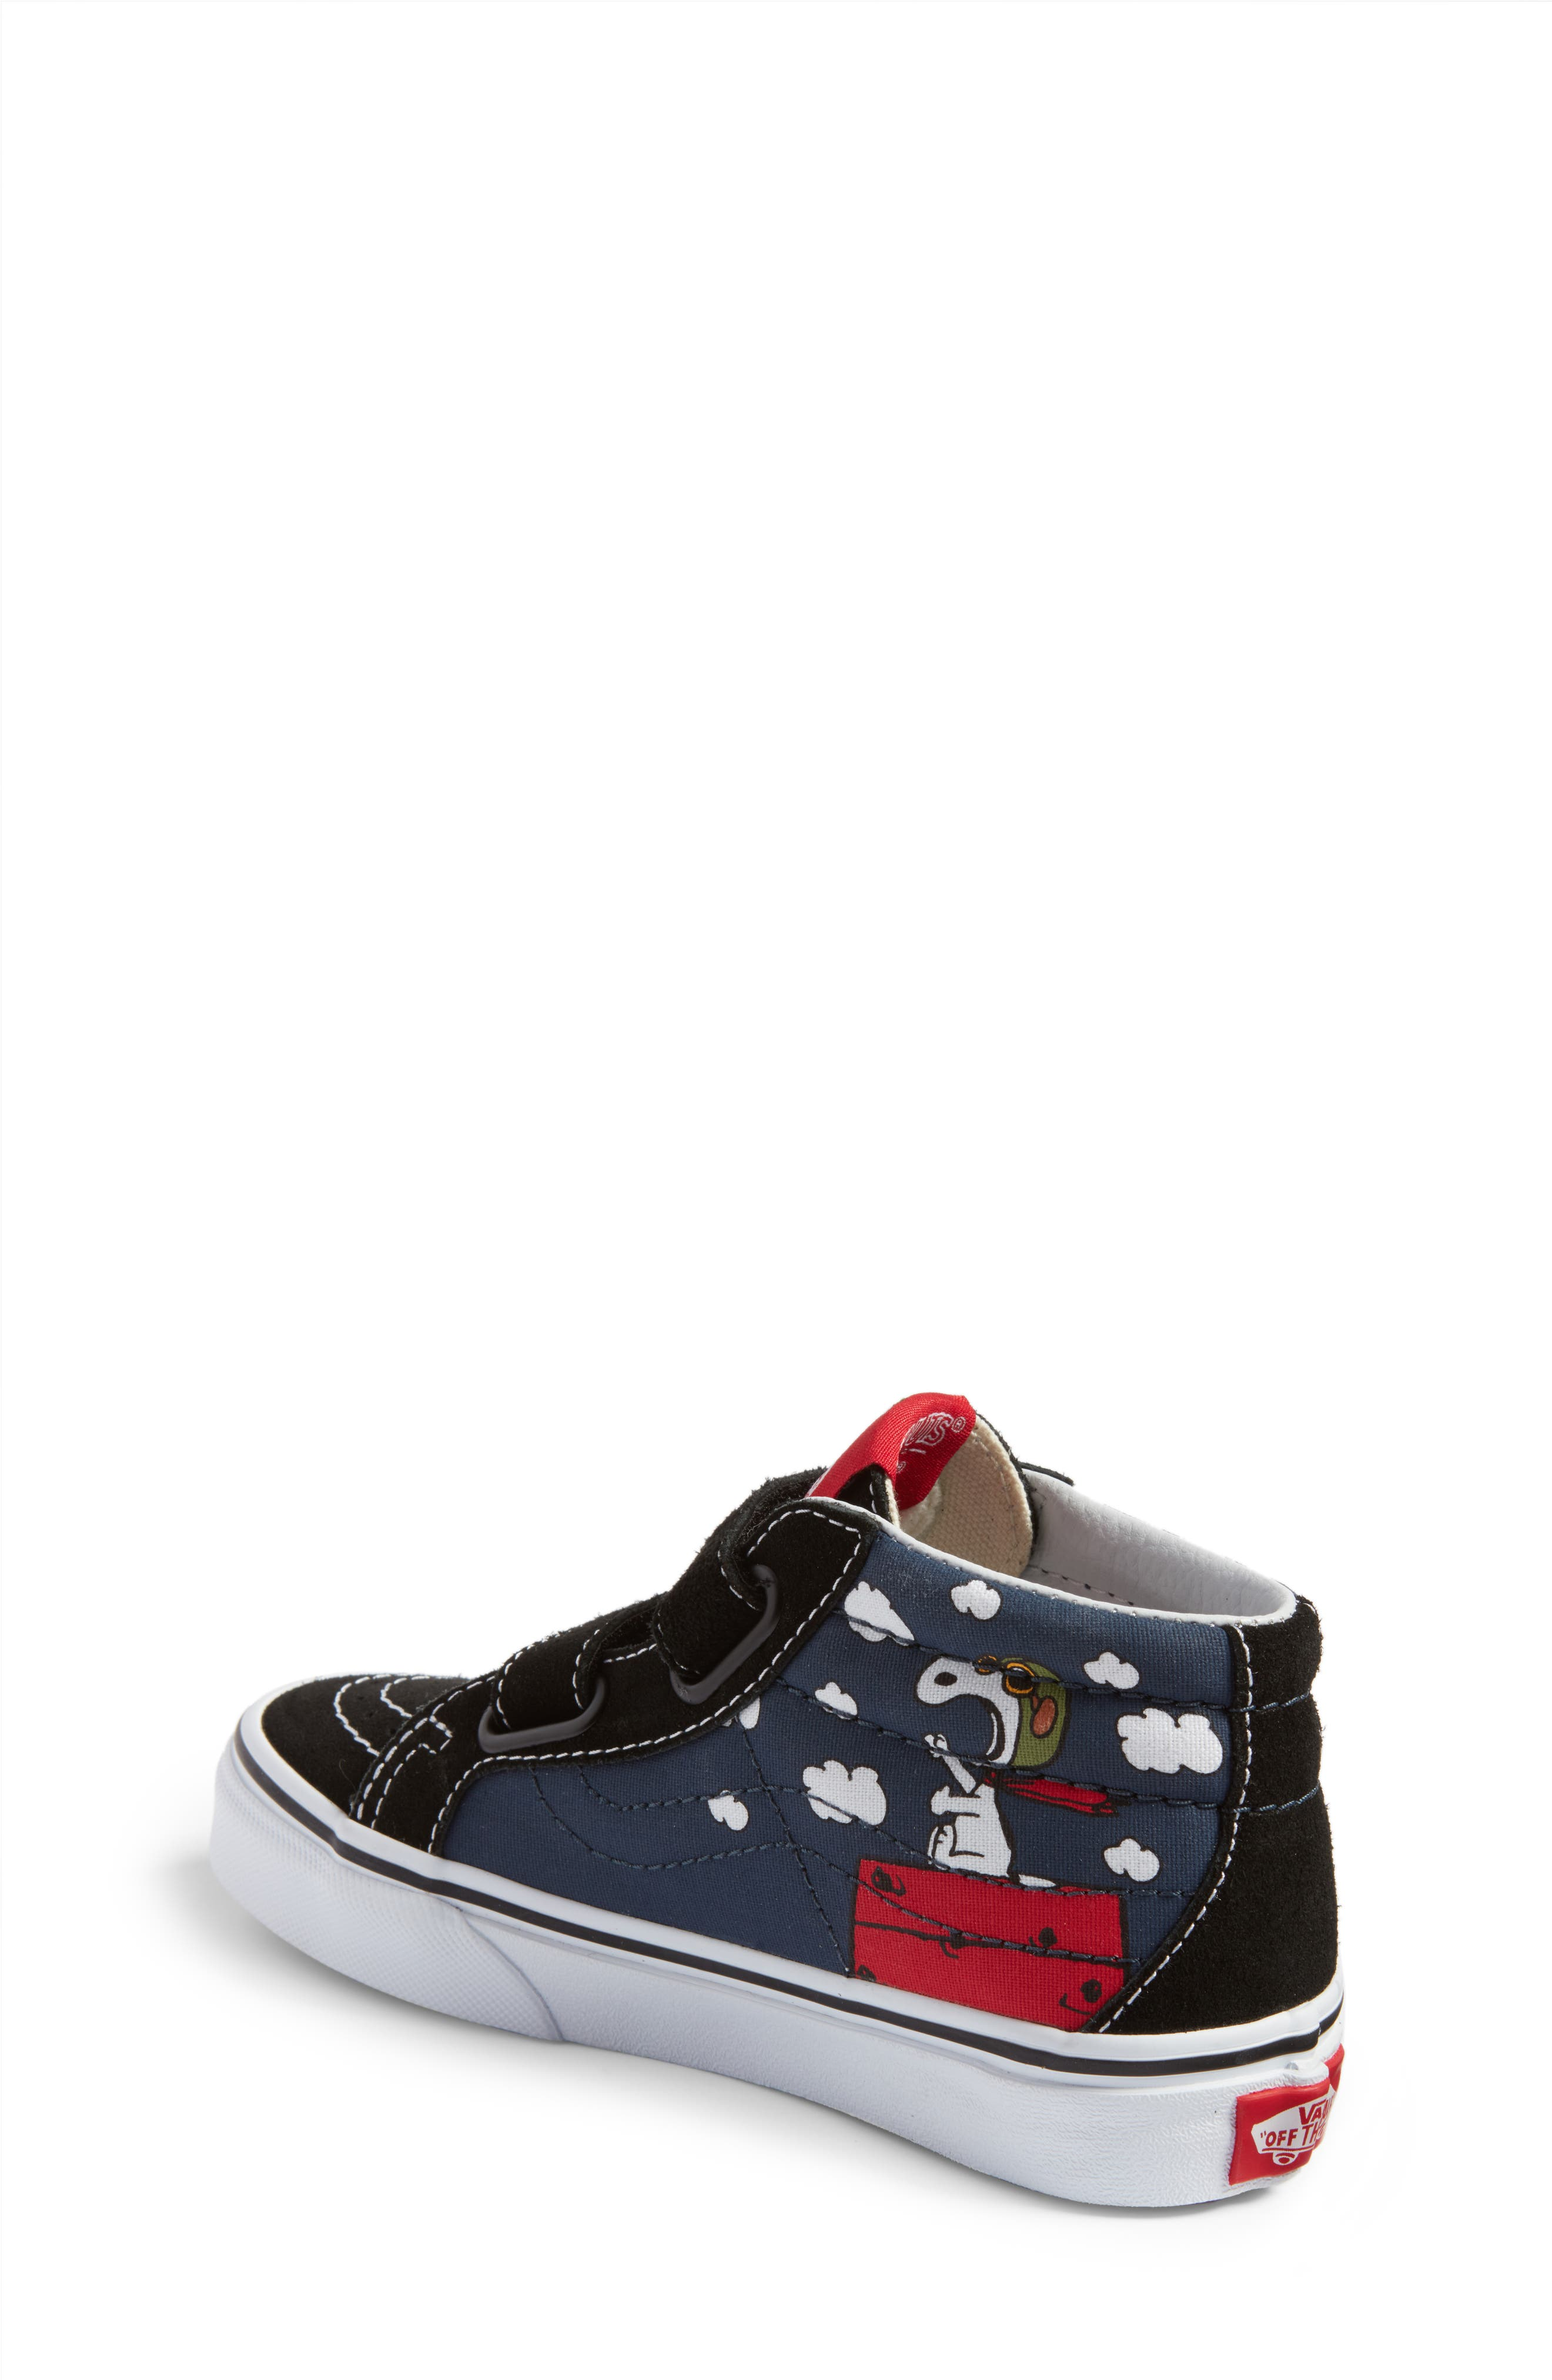 x Peanuts SK8-Mid Reissue V Sneaker,                             Alternate thumbnail 2, color,                             Flying Ace/ Blue Canvas